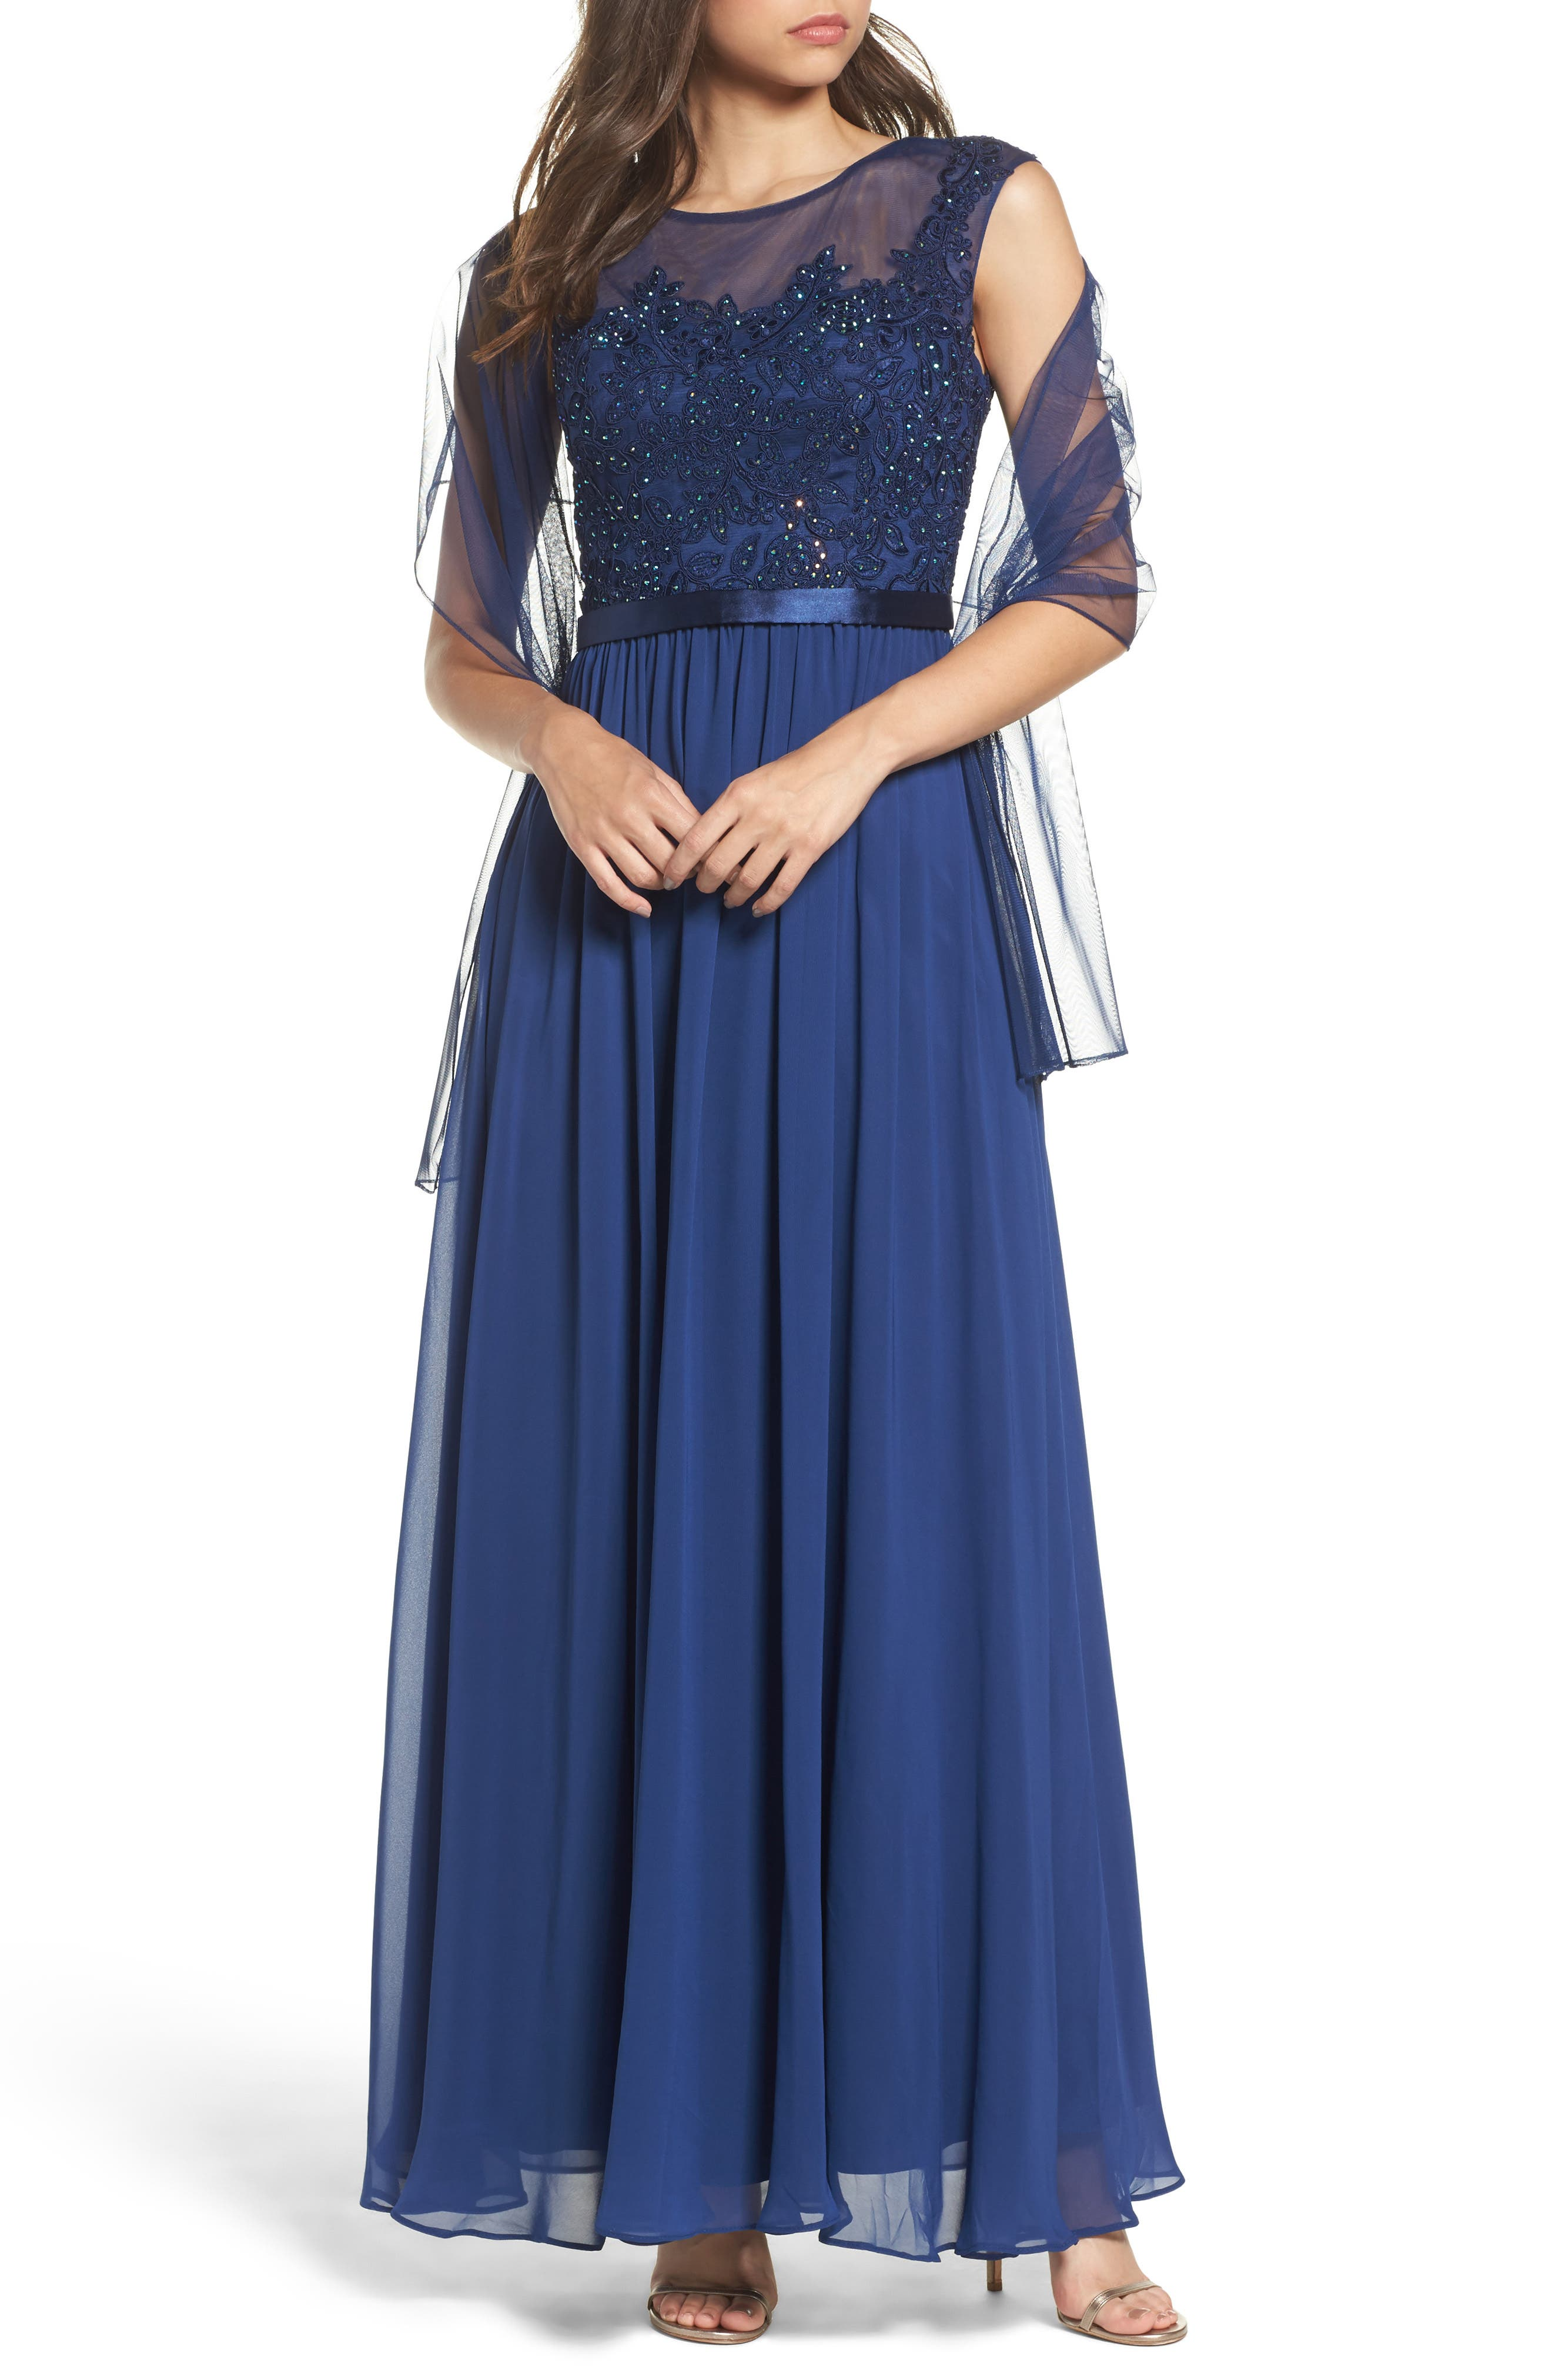 Xcape Embellished Bodice Mesh A-Line Gown,                             Main thumbnail 1, color,